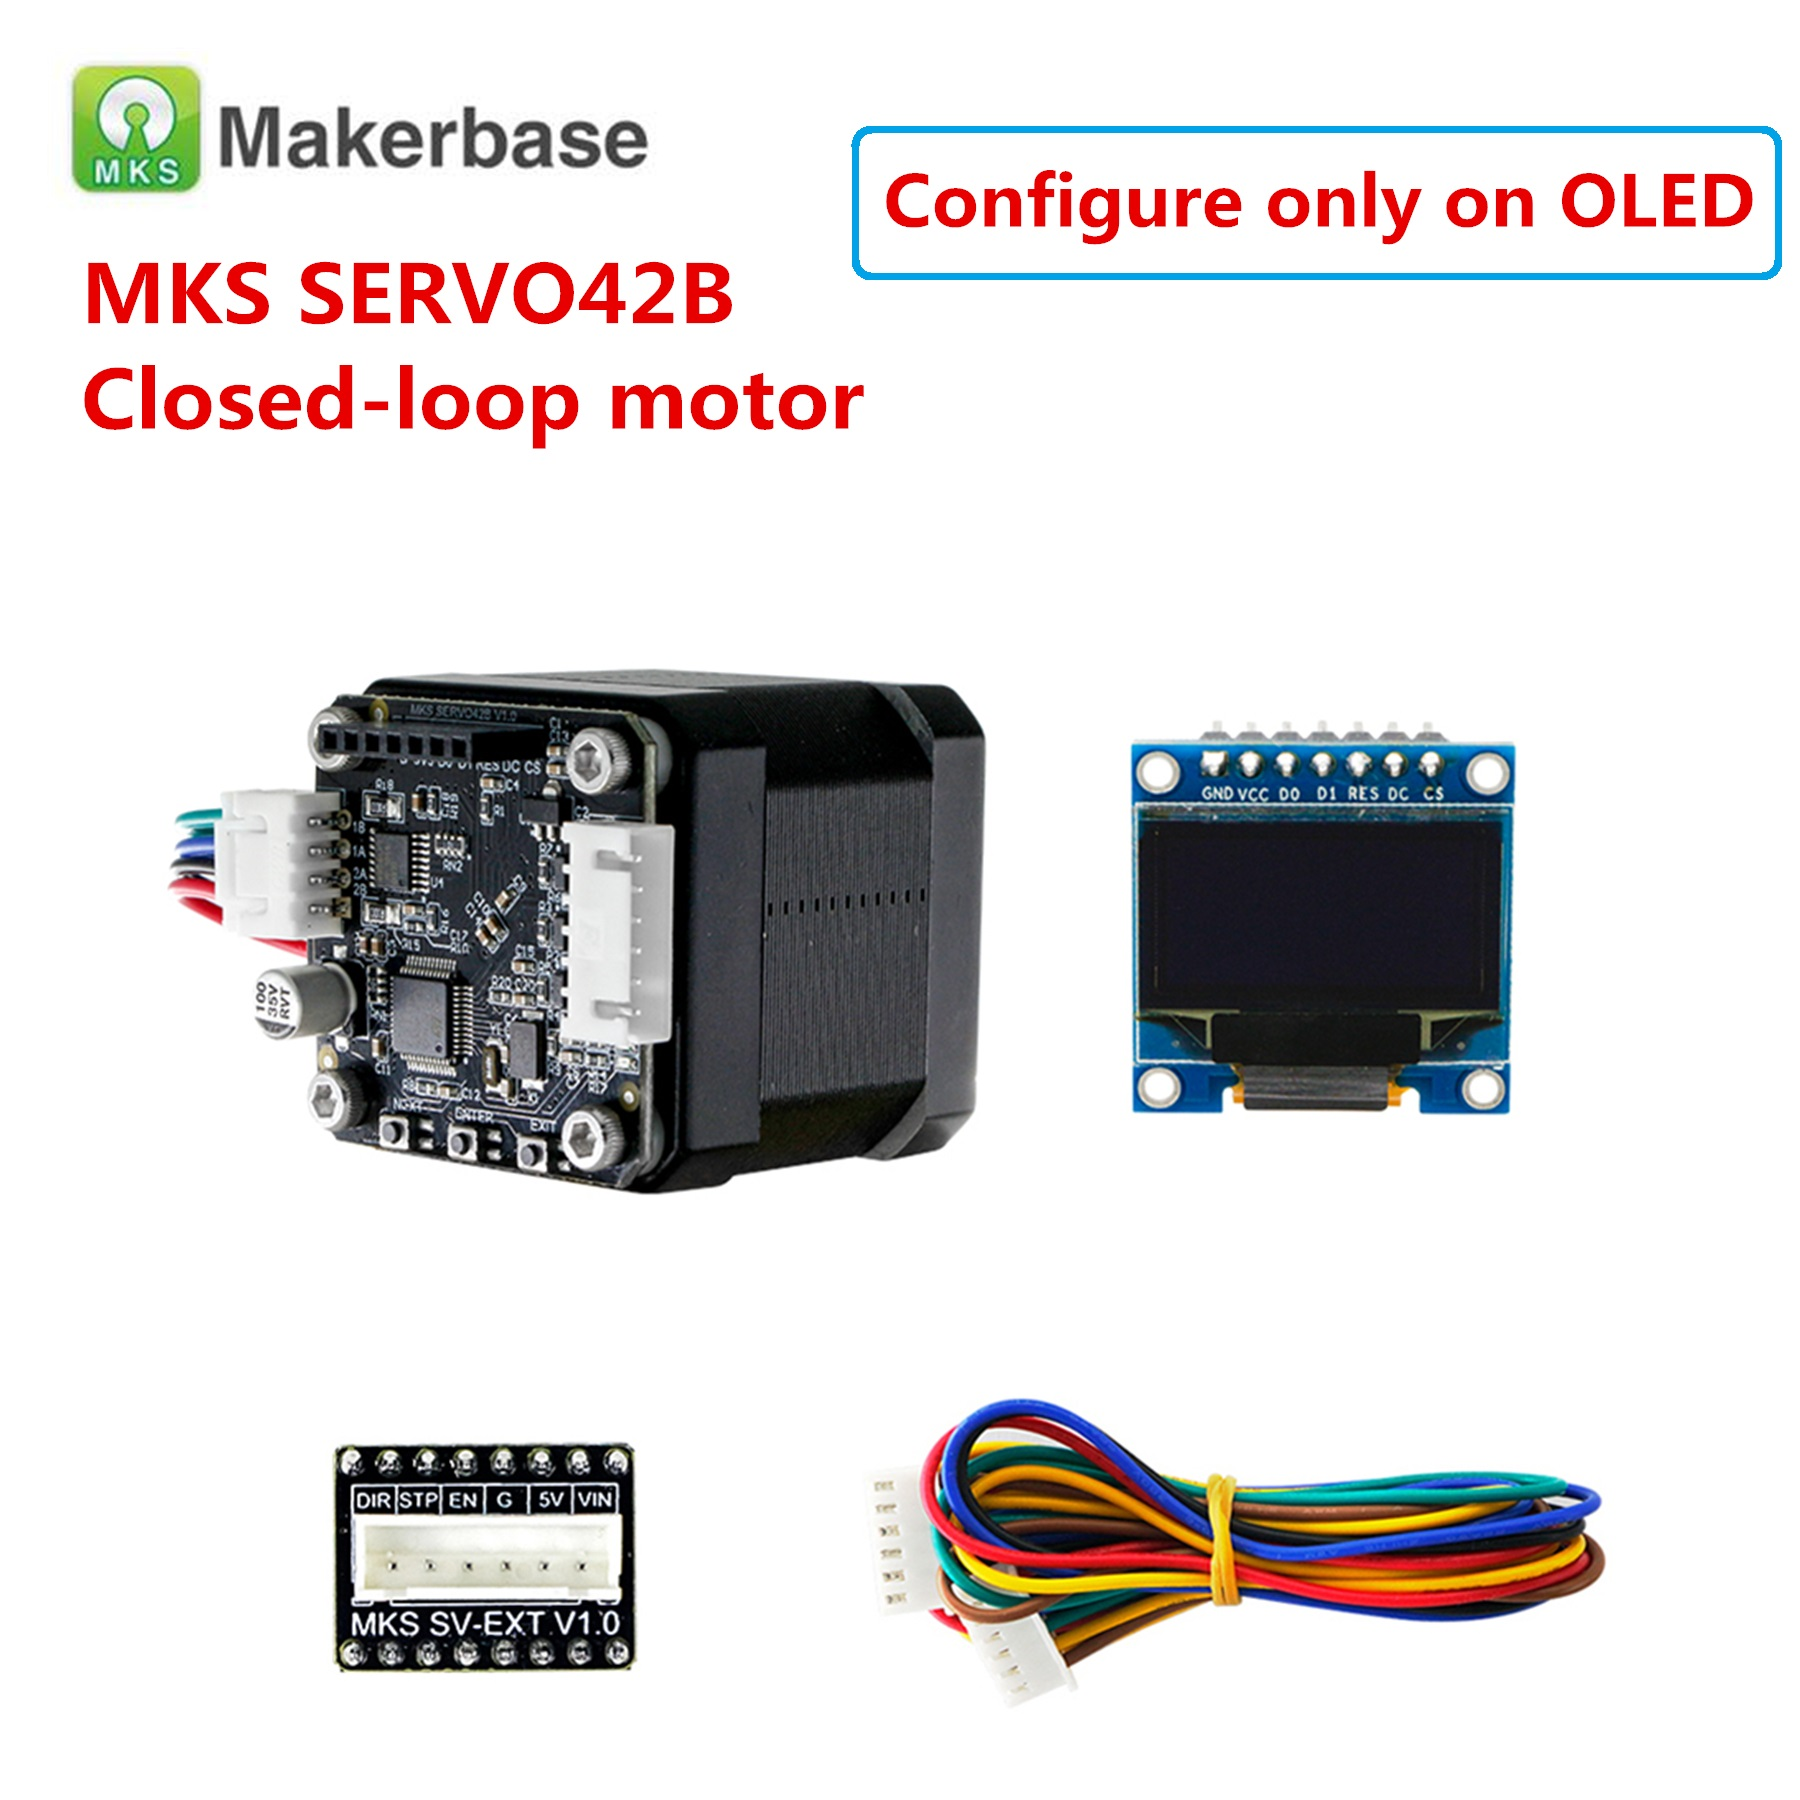 MKS SERVO42A / SERVO42B Closed-loop Stepper Motor Servo Stepper Motor SMT32 Close Loop Motor SERVO42 Control For 3d Printer Nema